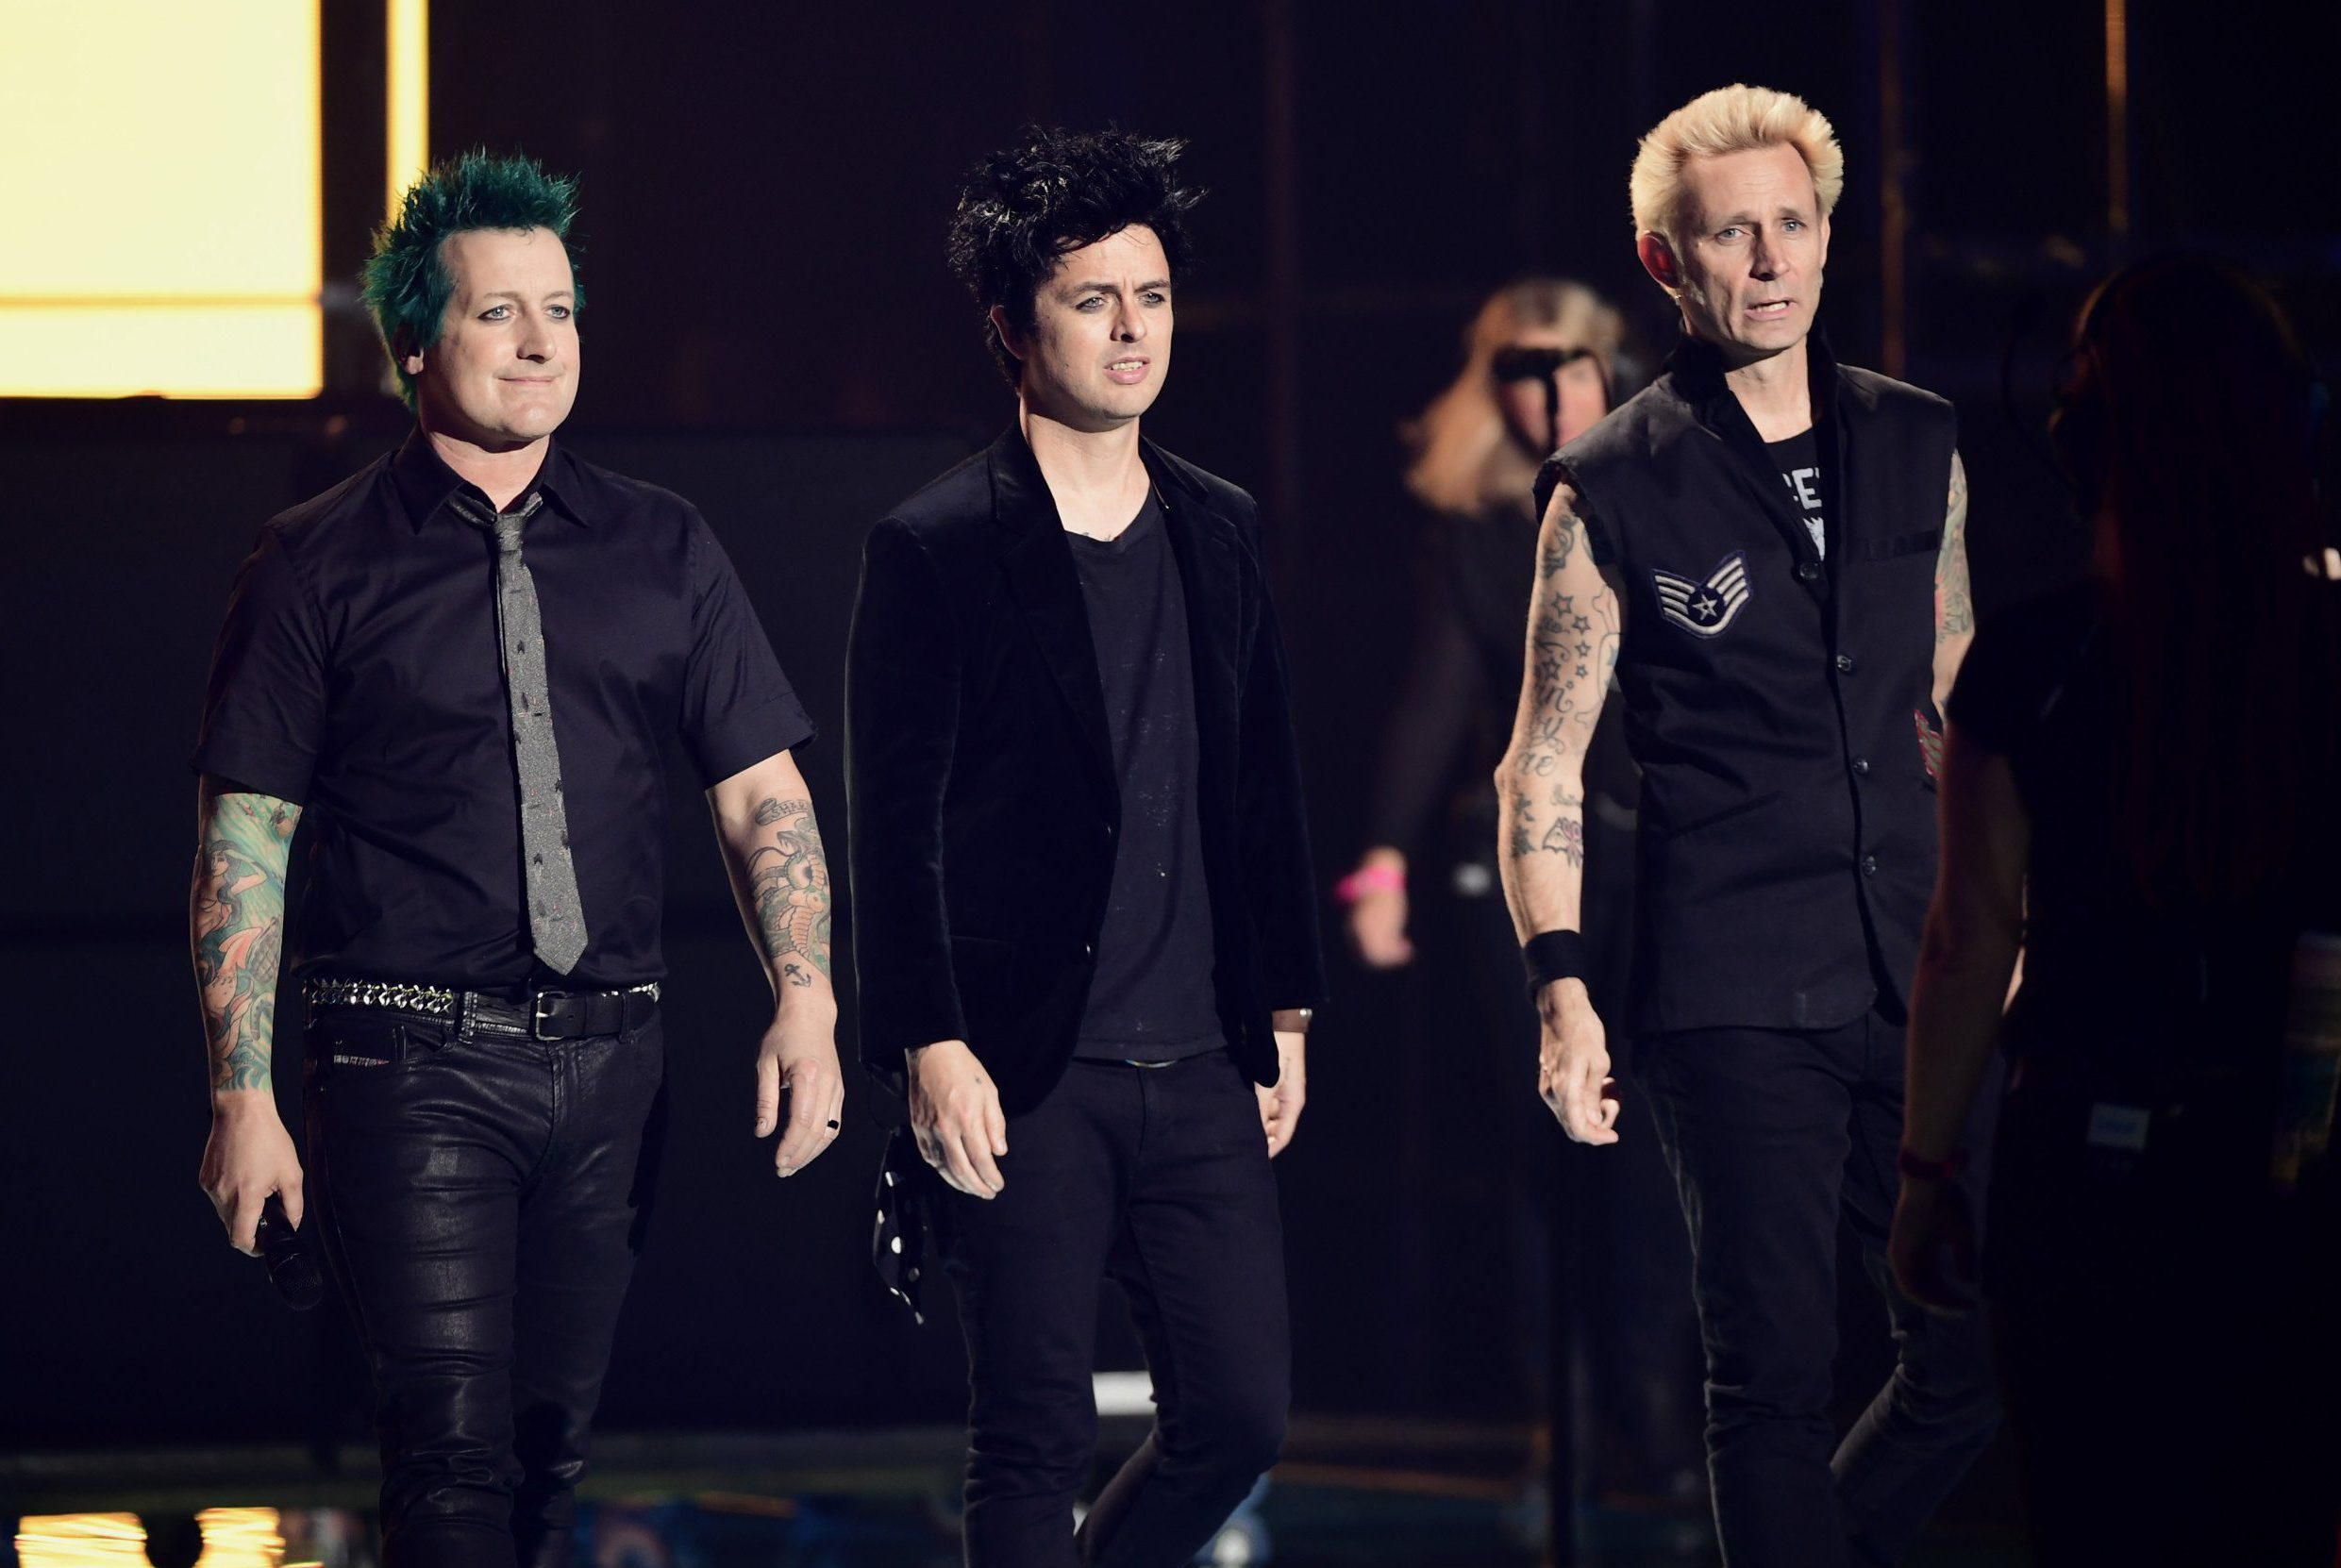 'I f**king hate him': Green Day's Billie Joe Armstrong launches another scathing attack on Donald Trump